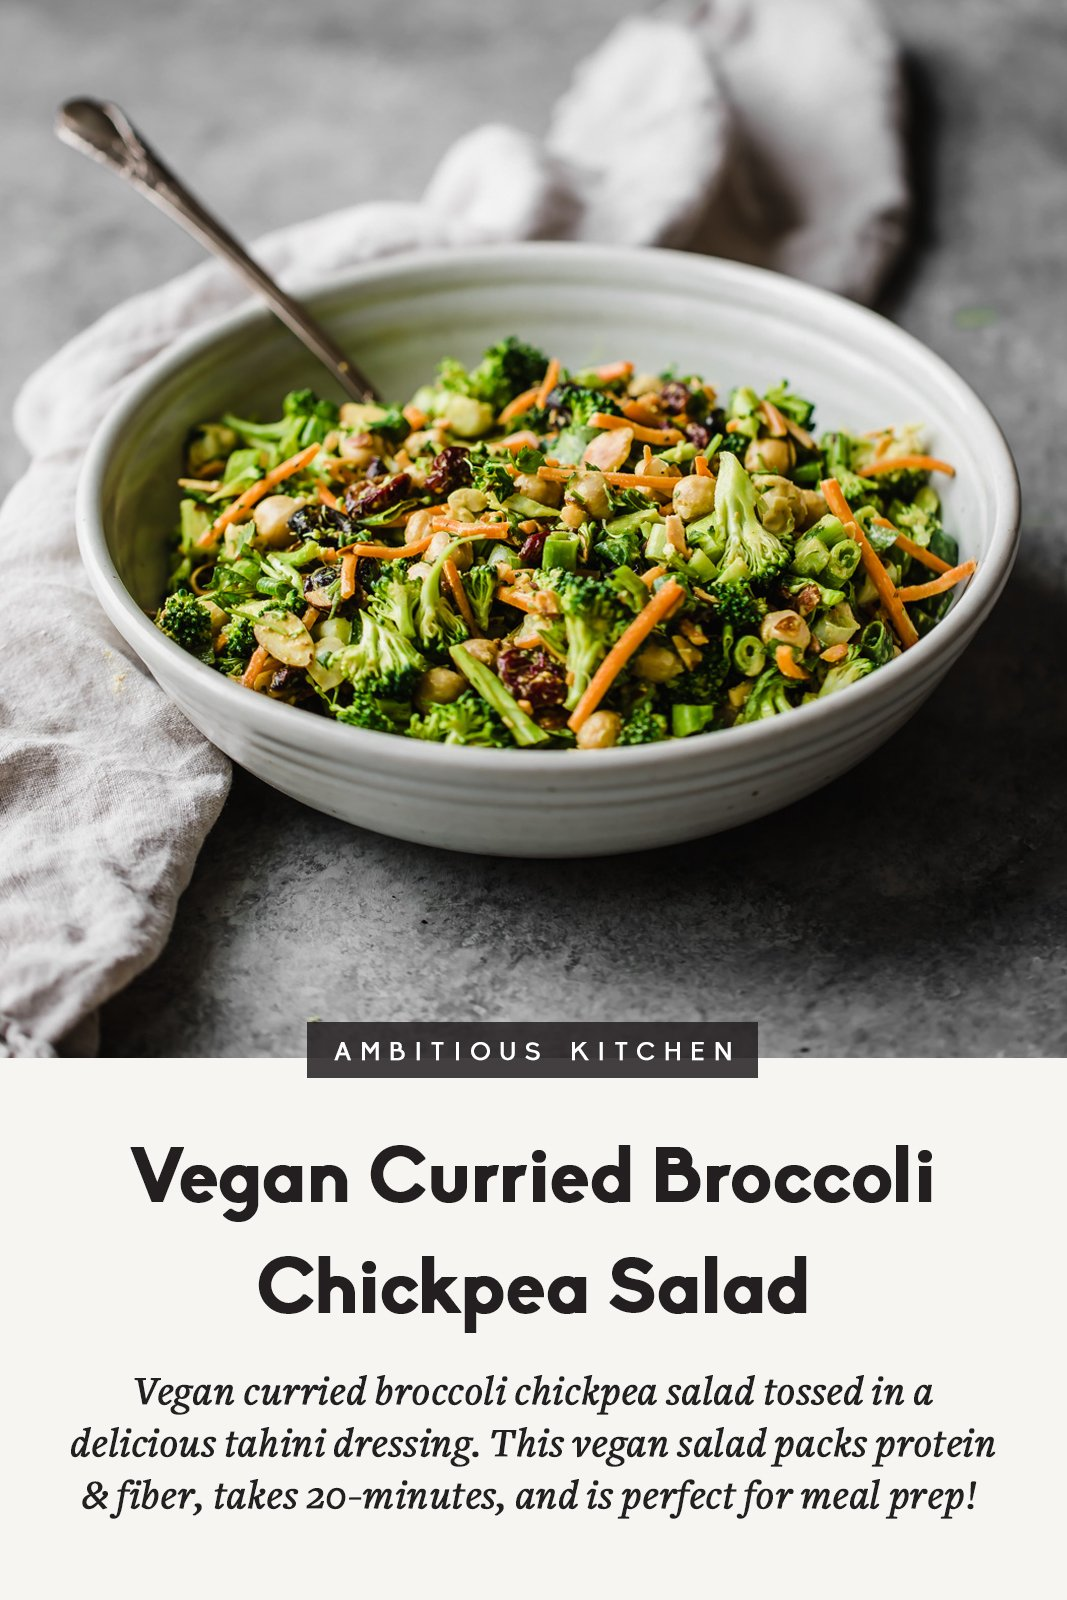 broccoli chickpea salad in a bowl with text underneath